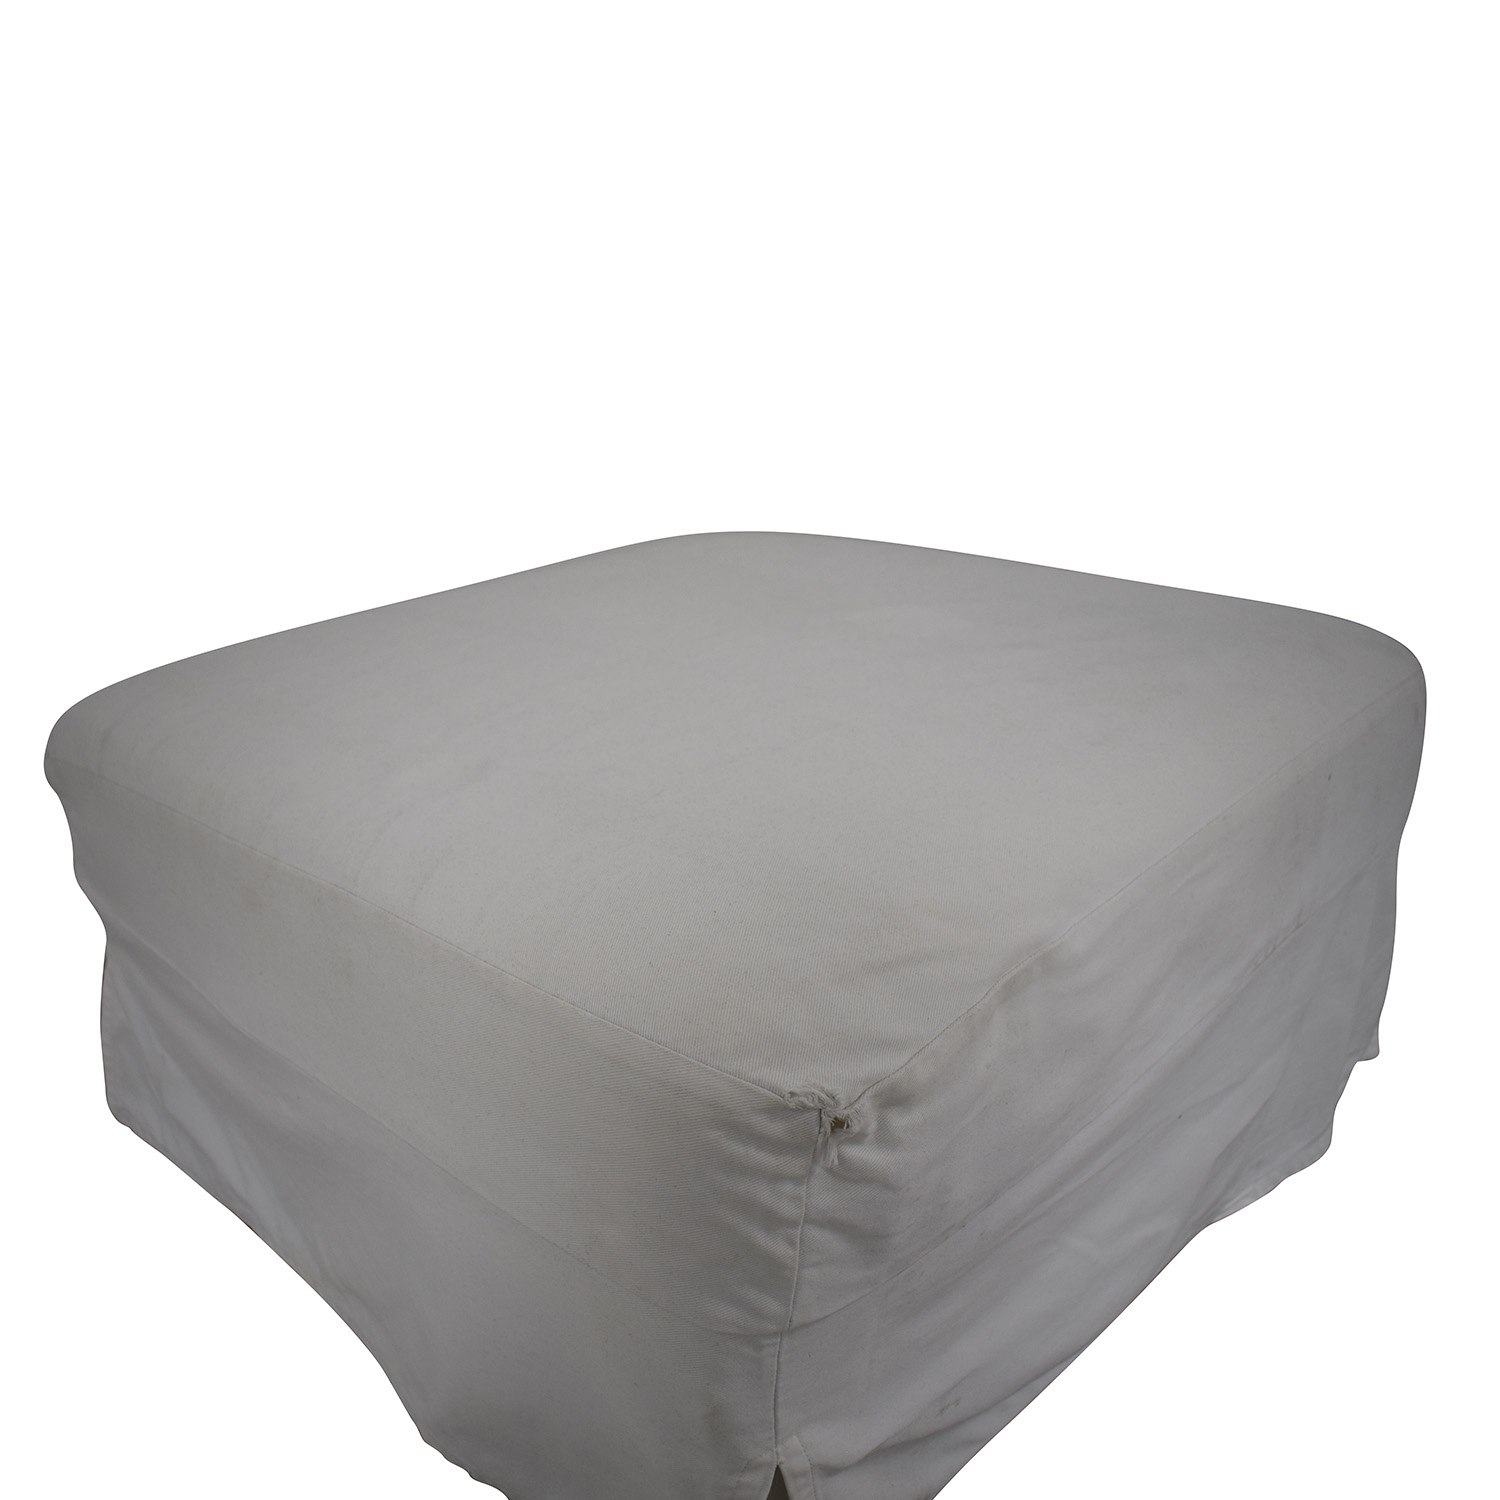 West Elm West Elm Slipcovered Ottoman discount